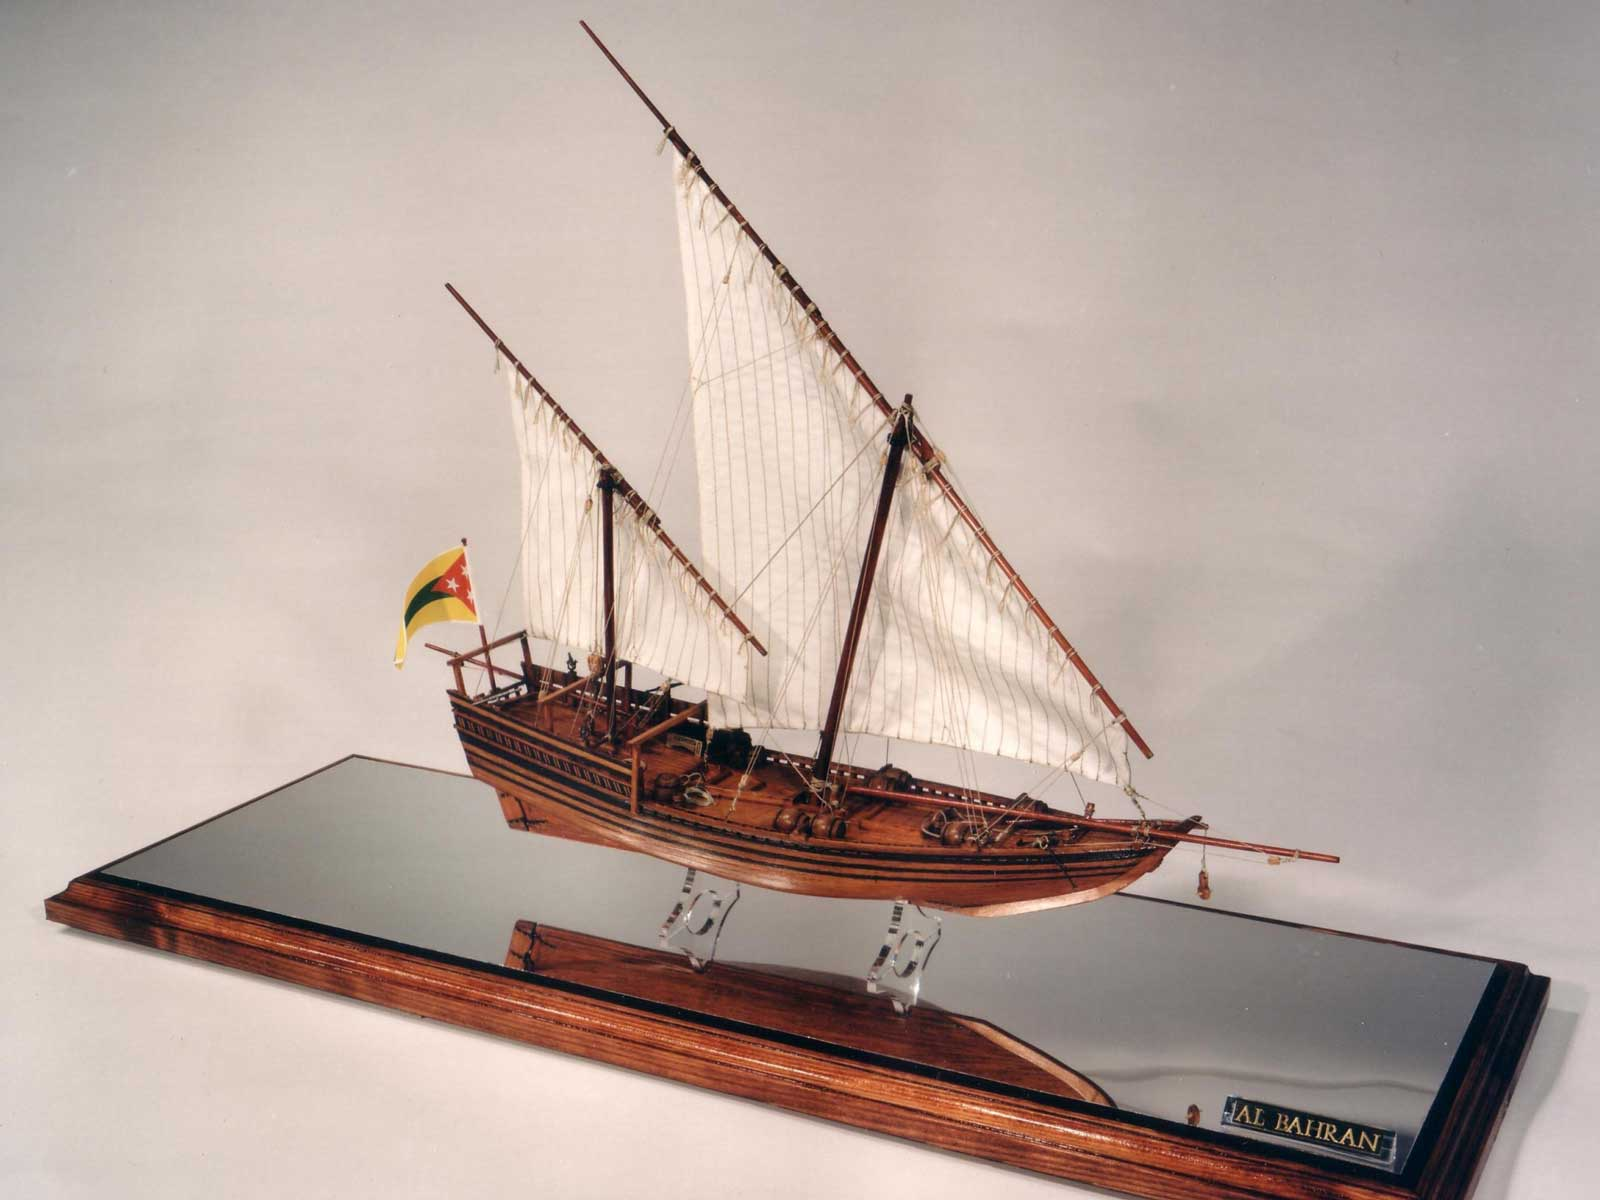 Photograph of a model boat presented as a gift to the King Of Bahrain